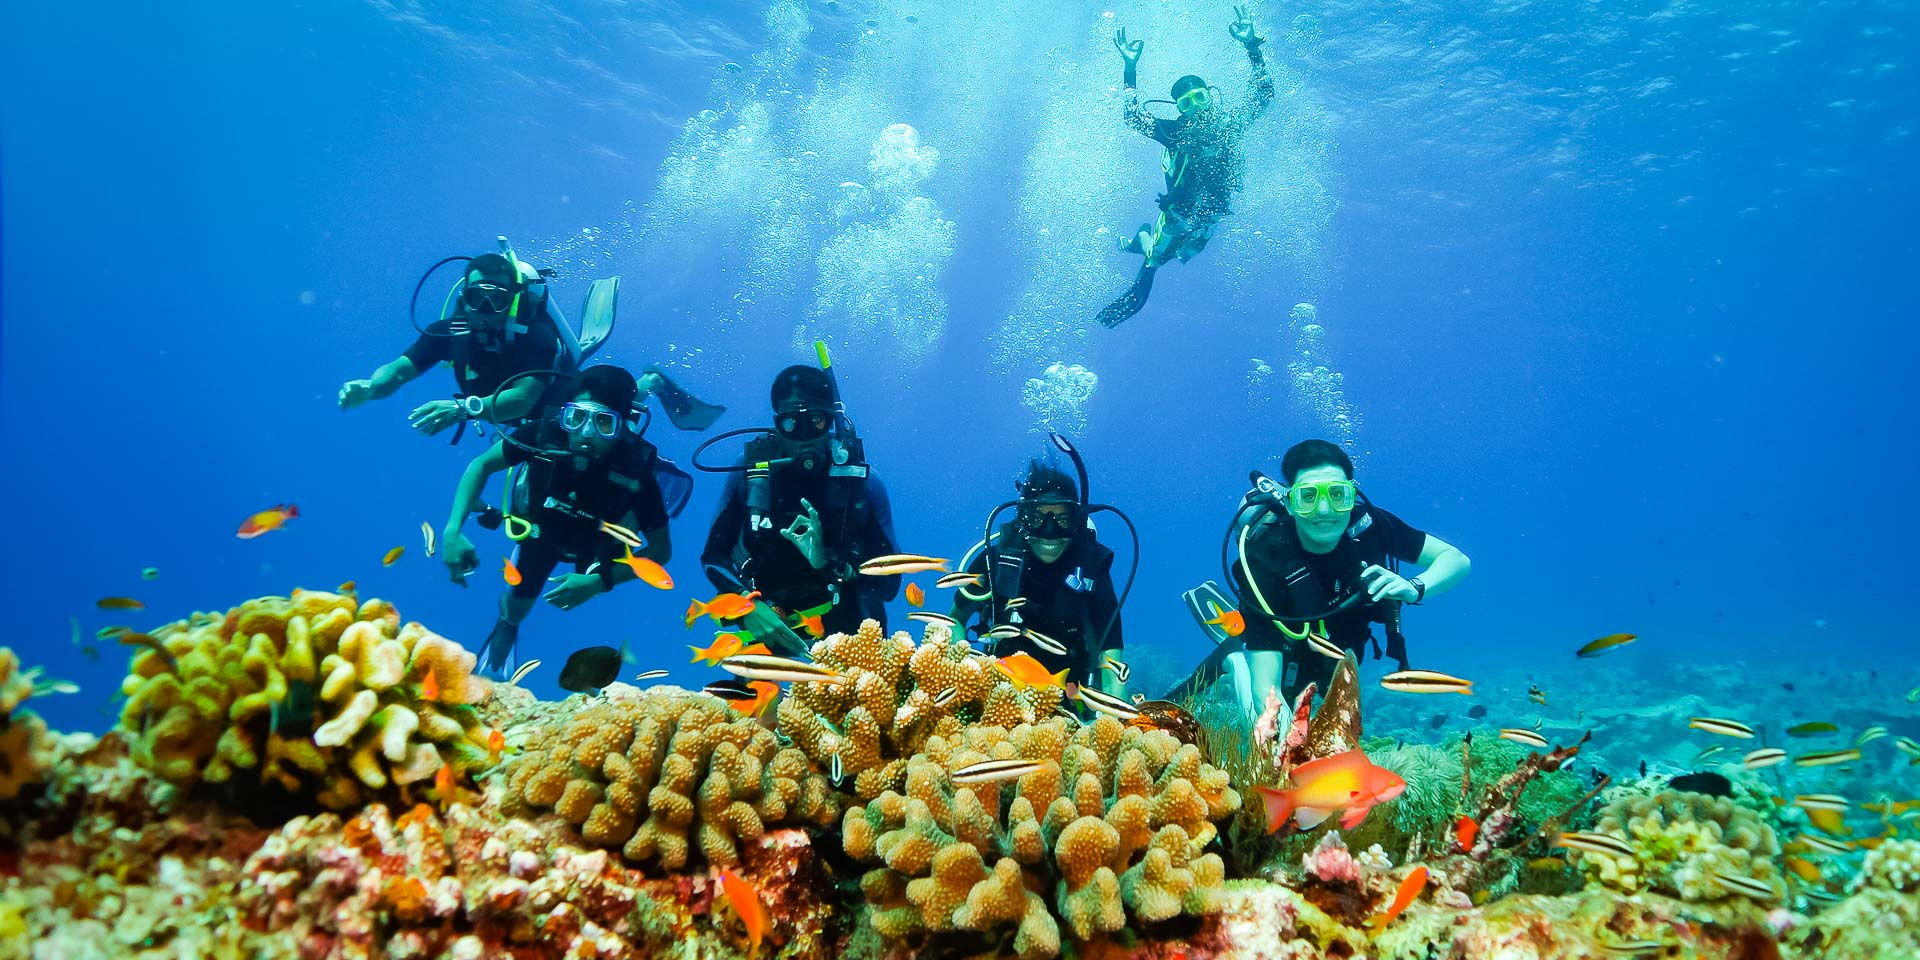 Dhiya's blog - Marine Savers internship Maldives